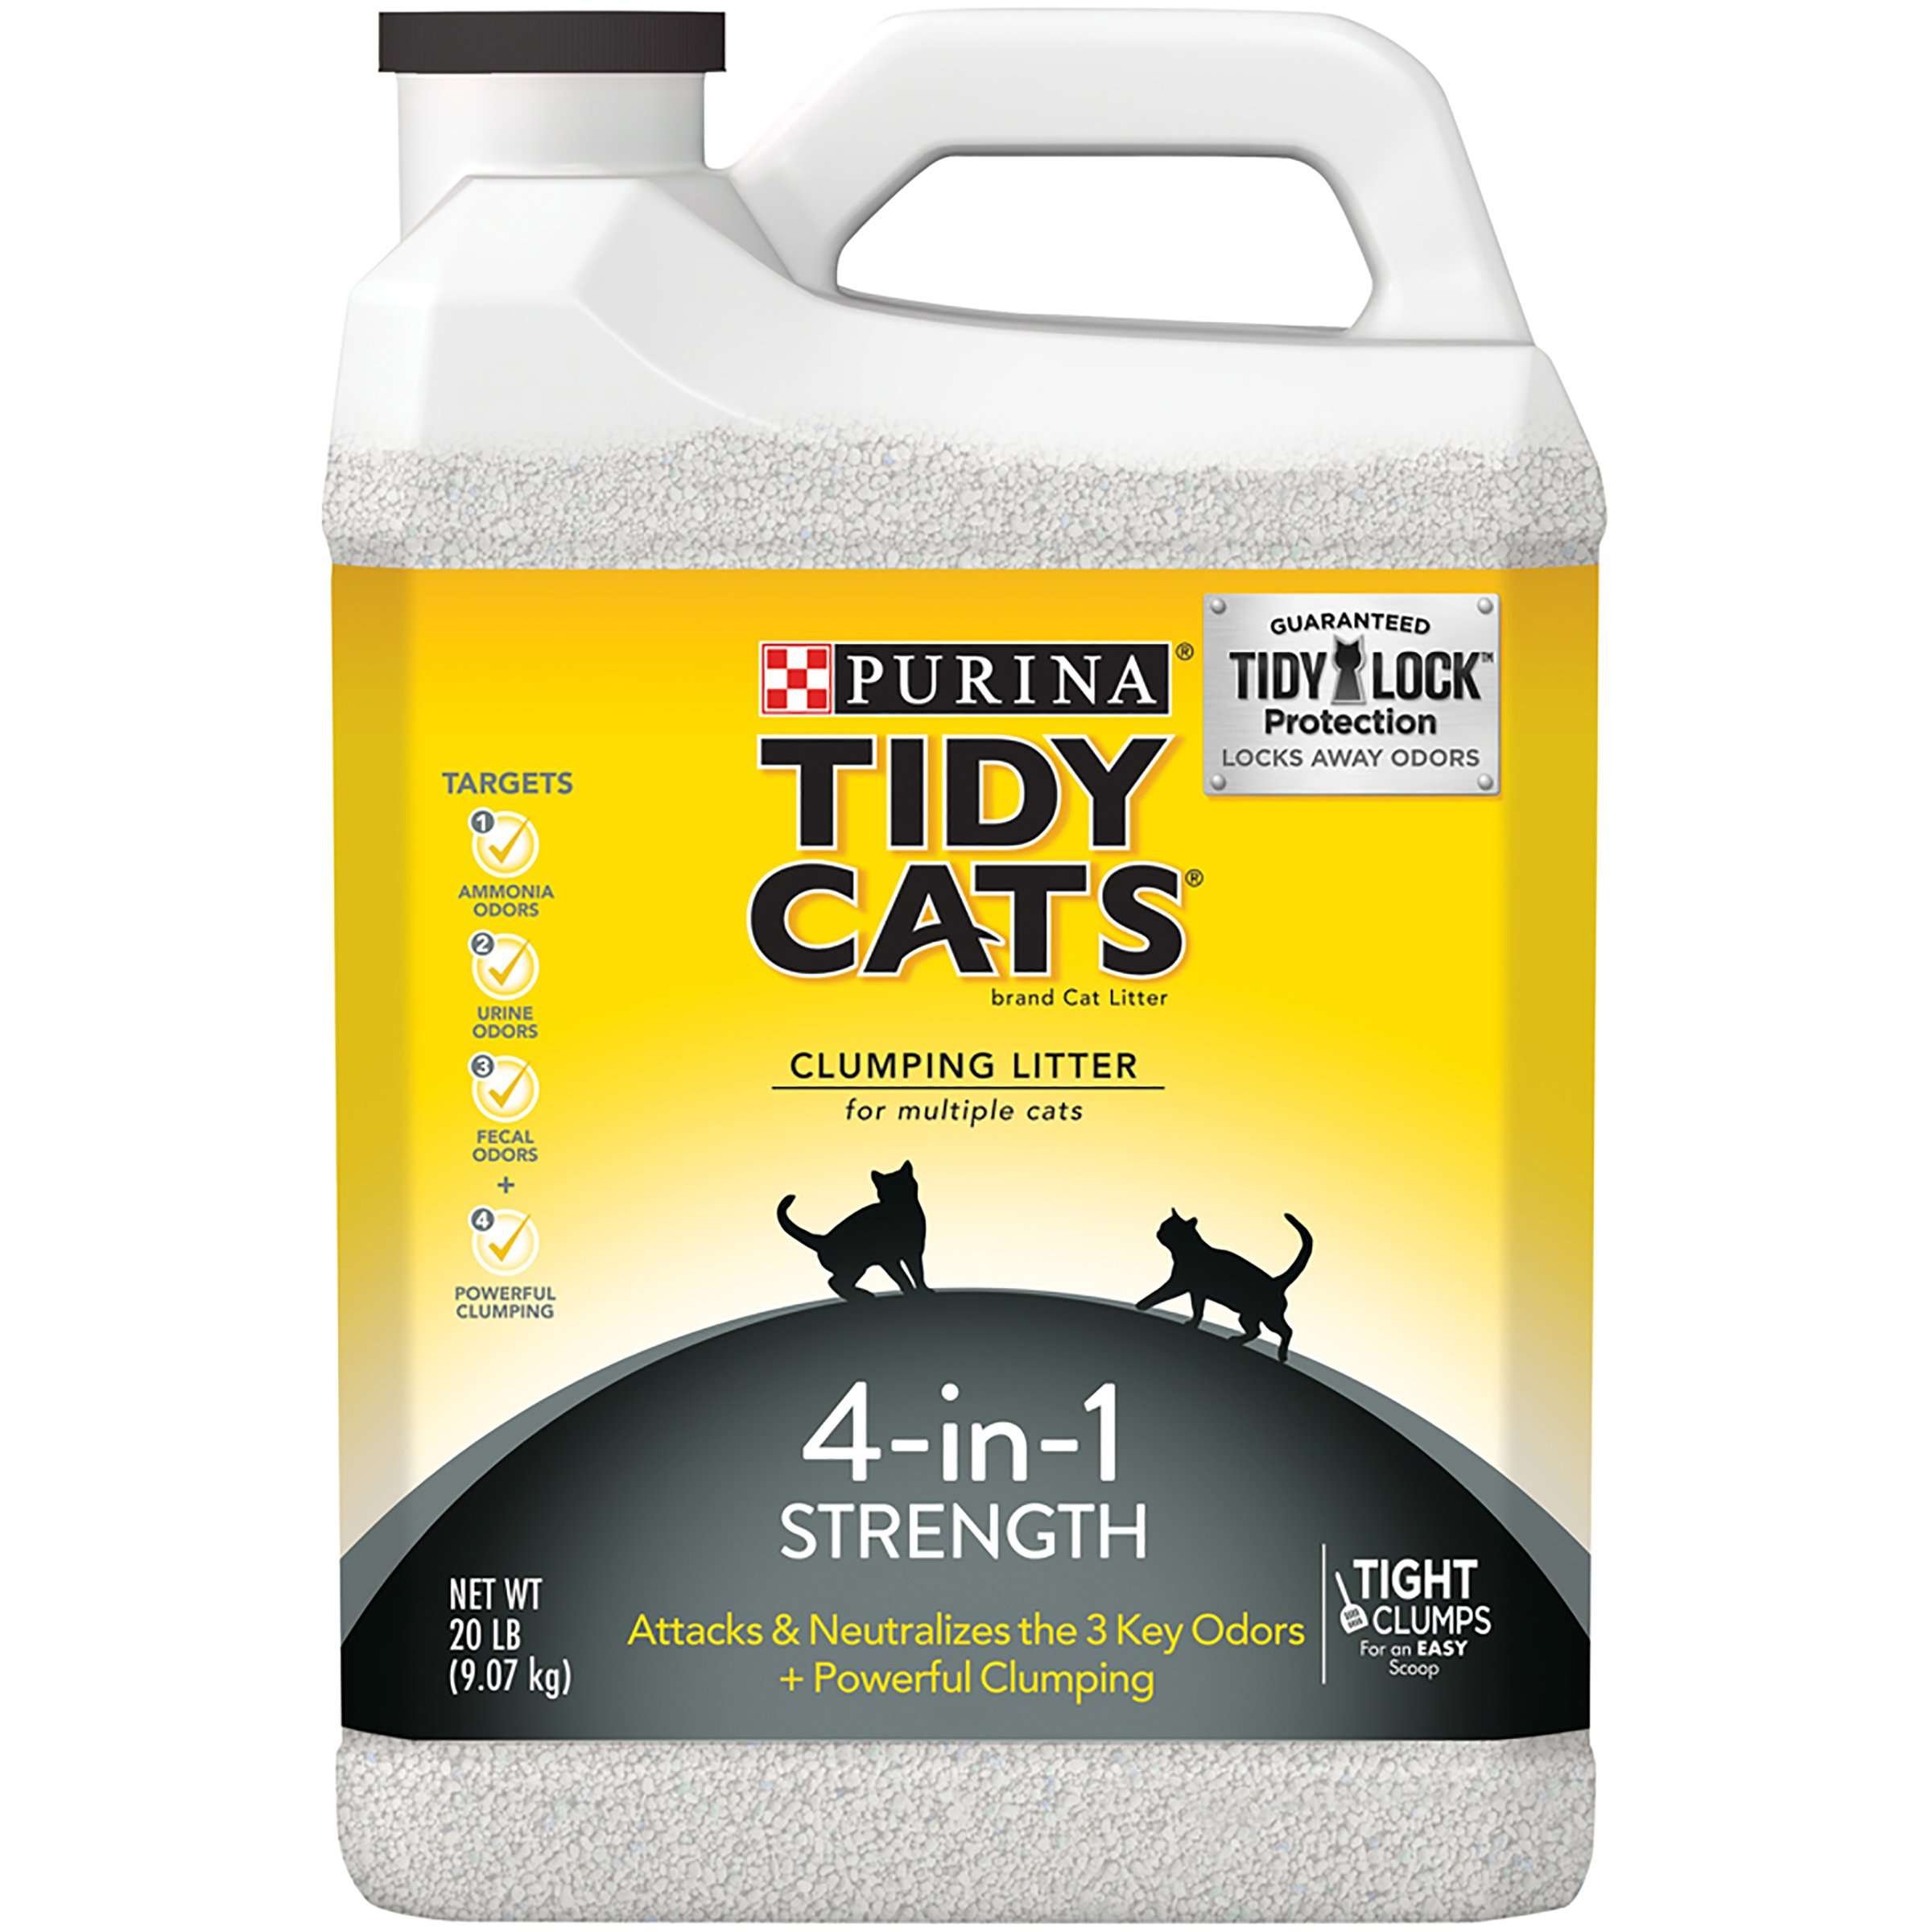 Purina Tidy Cats 4-in-1 Strength Clumping Cat Litter Standard Packaging